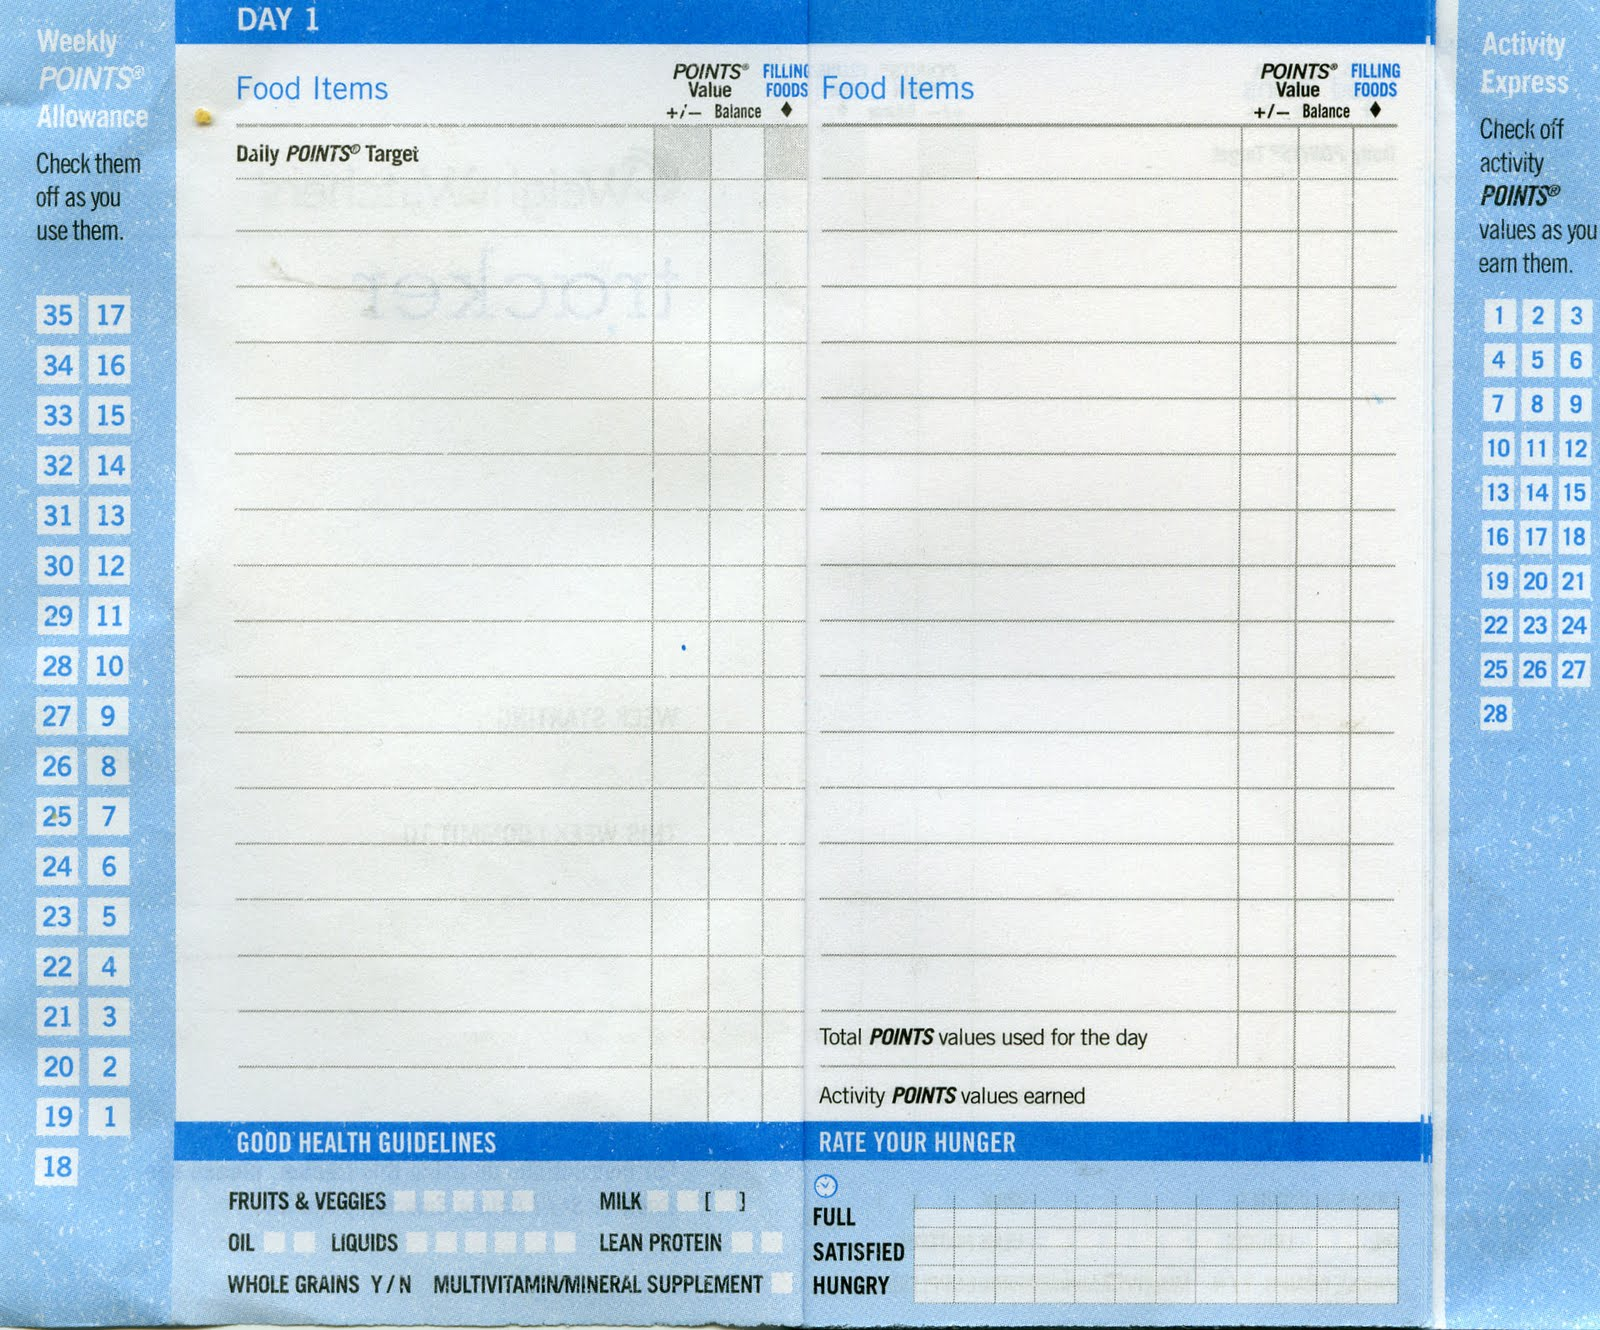 Weight Watchers Food Tracking Sheets http://aletha4.blogspot.com/2010/08/weight-watchers-tracker-log-with-2.html